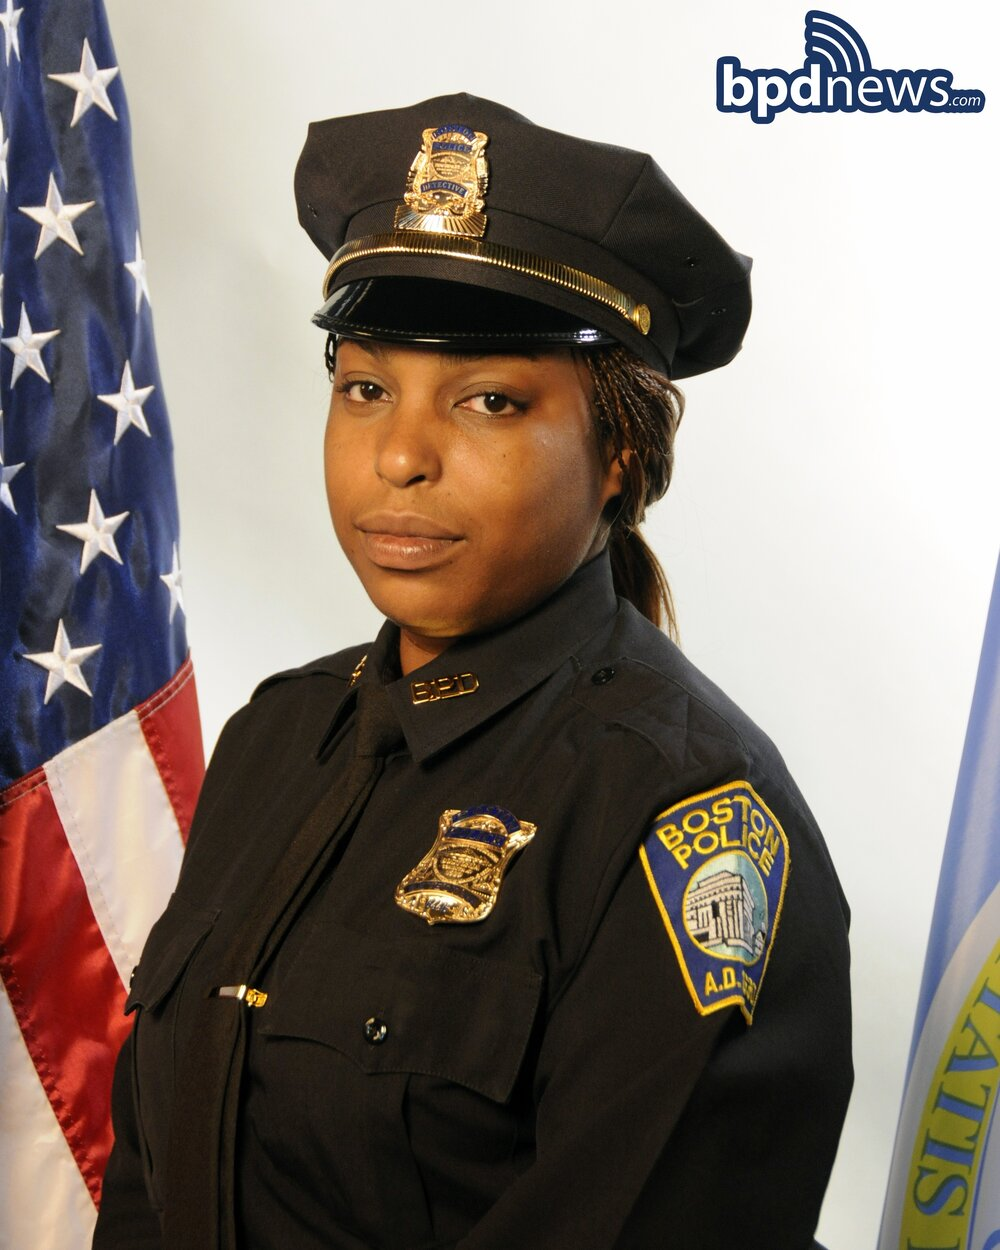 In Memoriam: The Boston Police Department Mourns the Passing of Detective Charisse Brittle-Powell